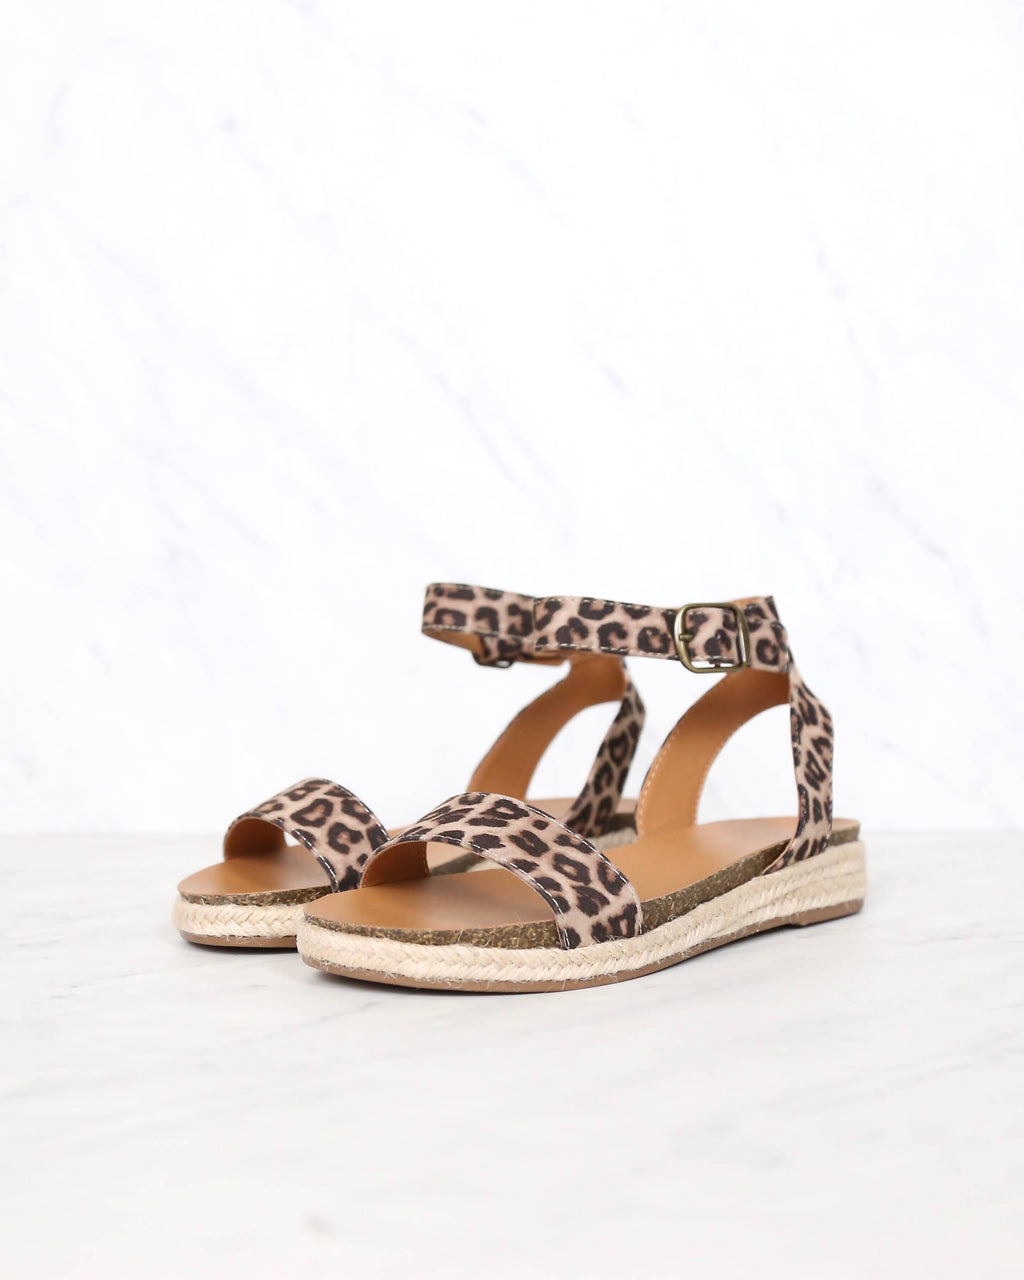 single band platform espadrille sandals with ankle strap - oat cheetah